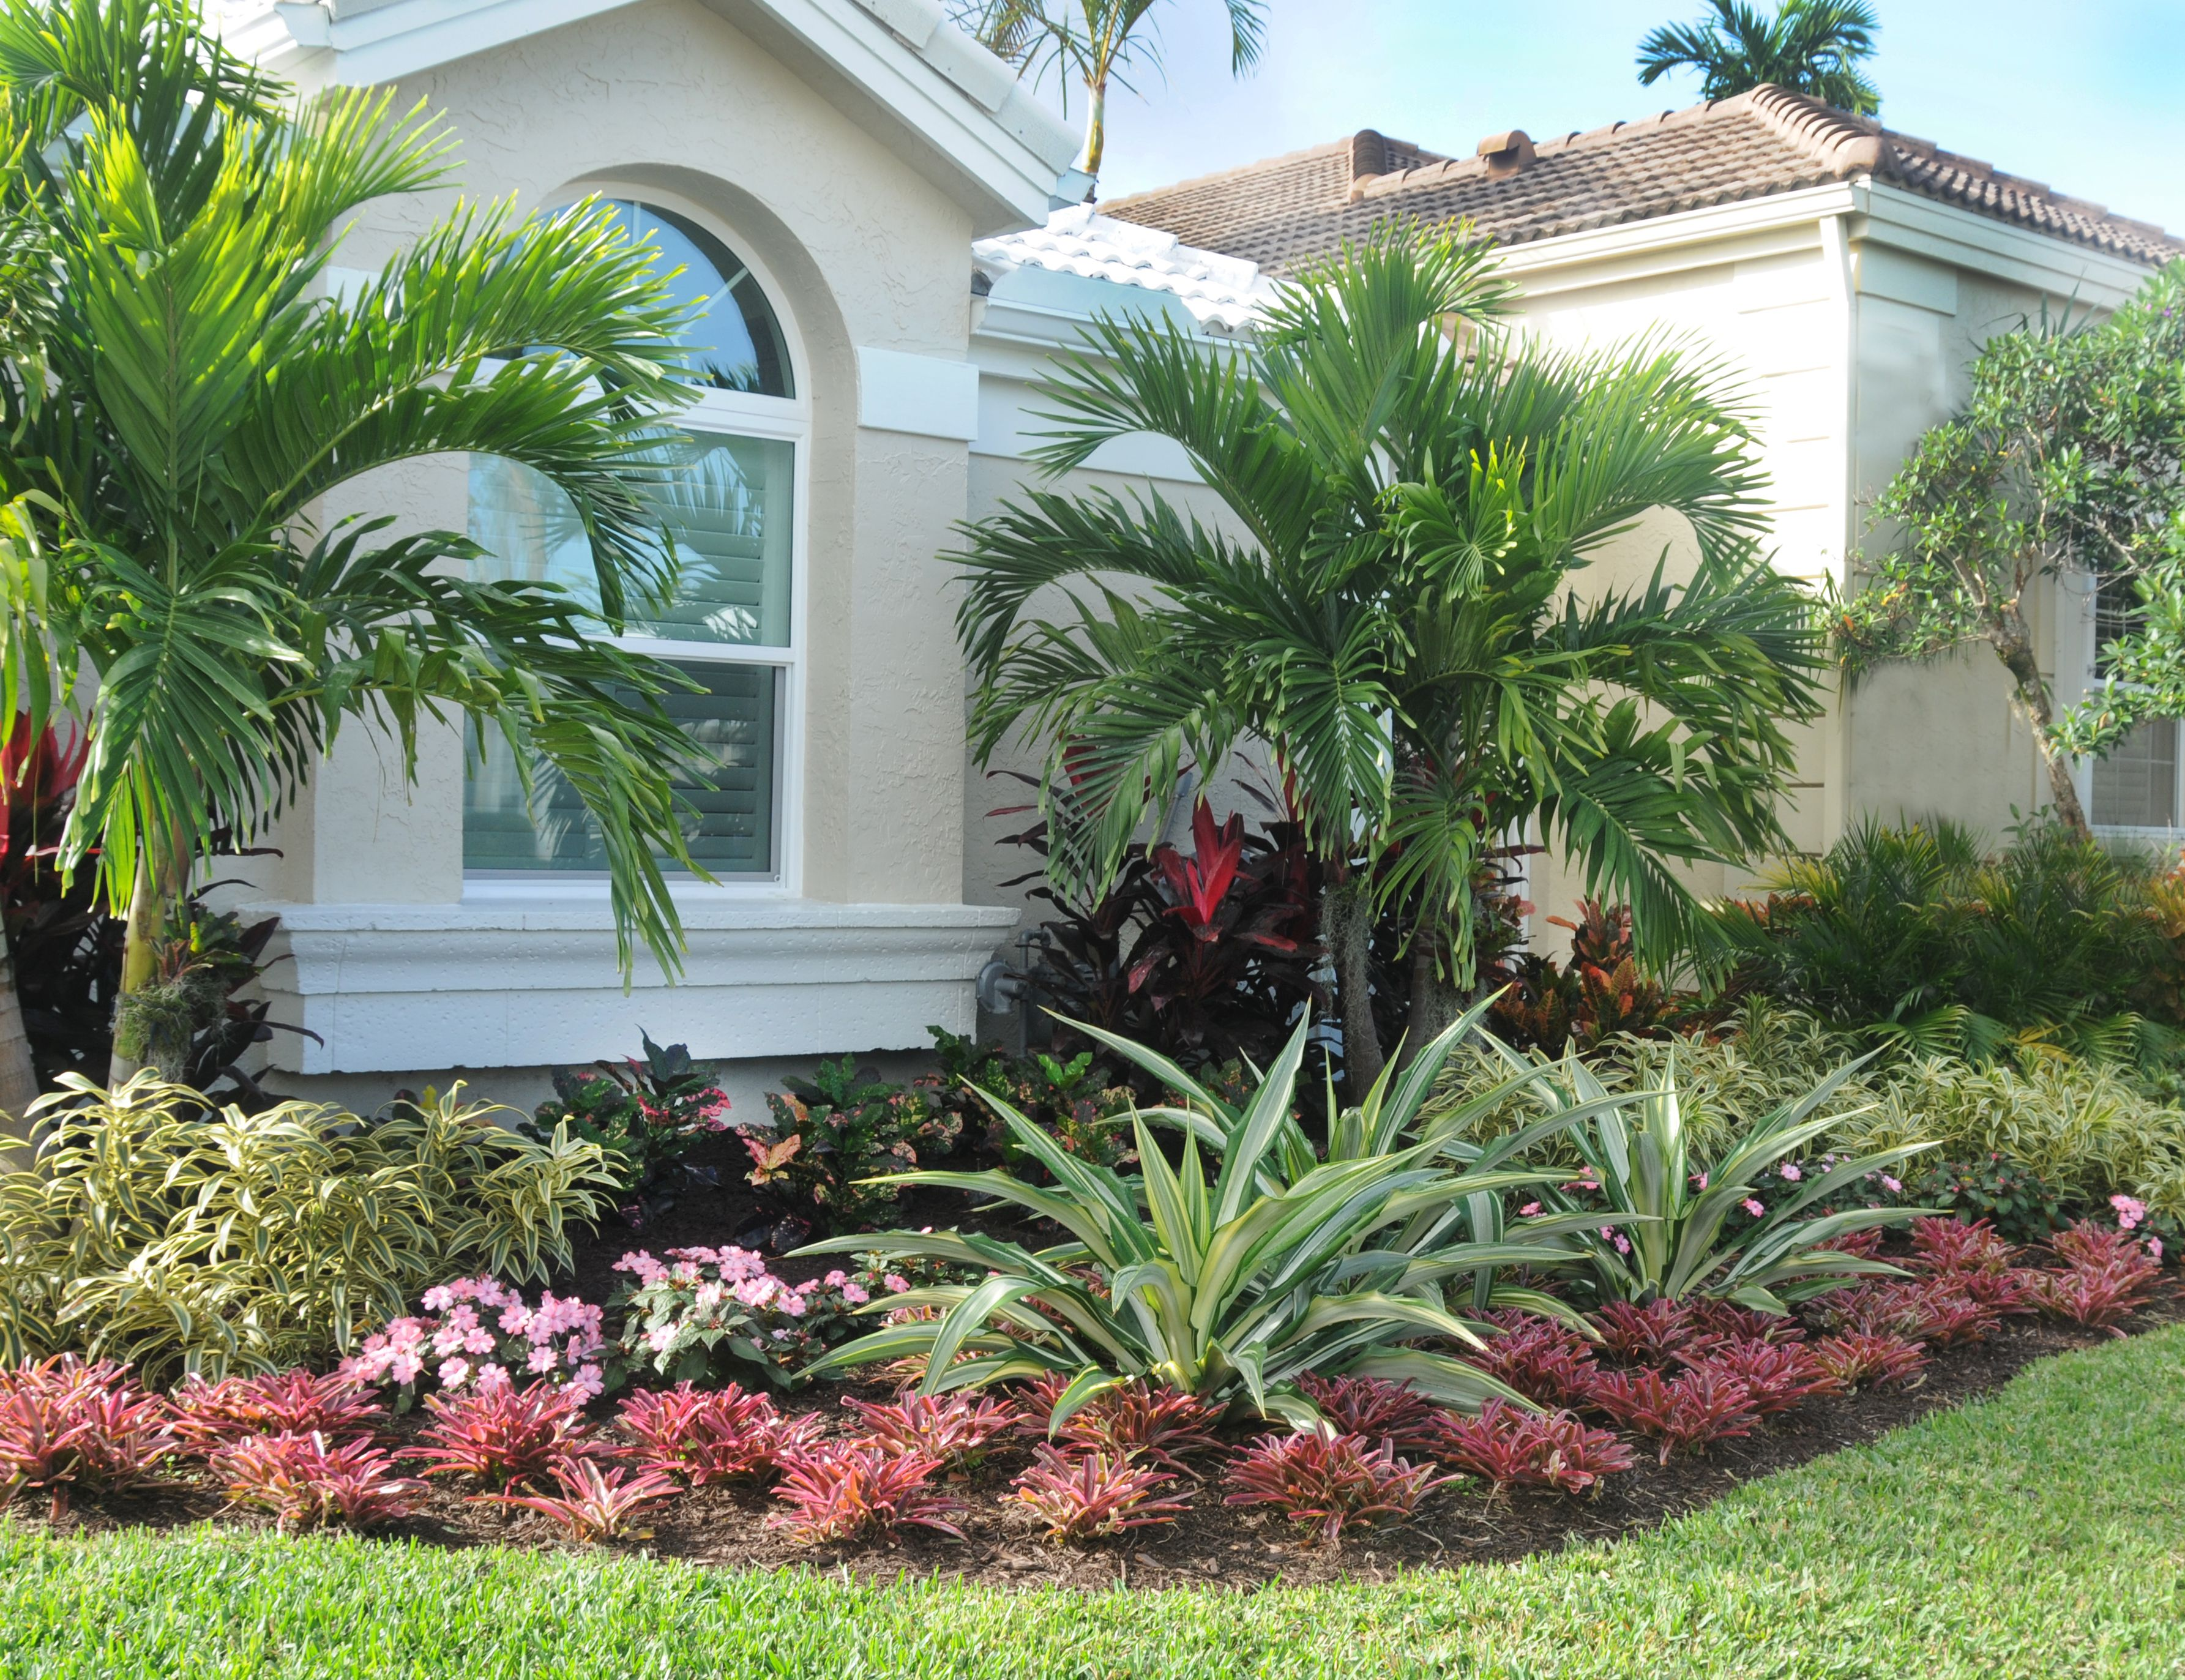 palms and tropical color form